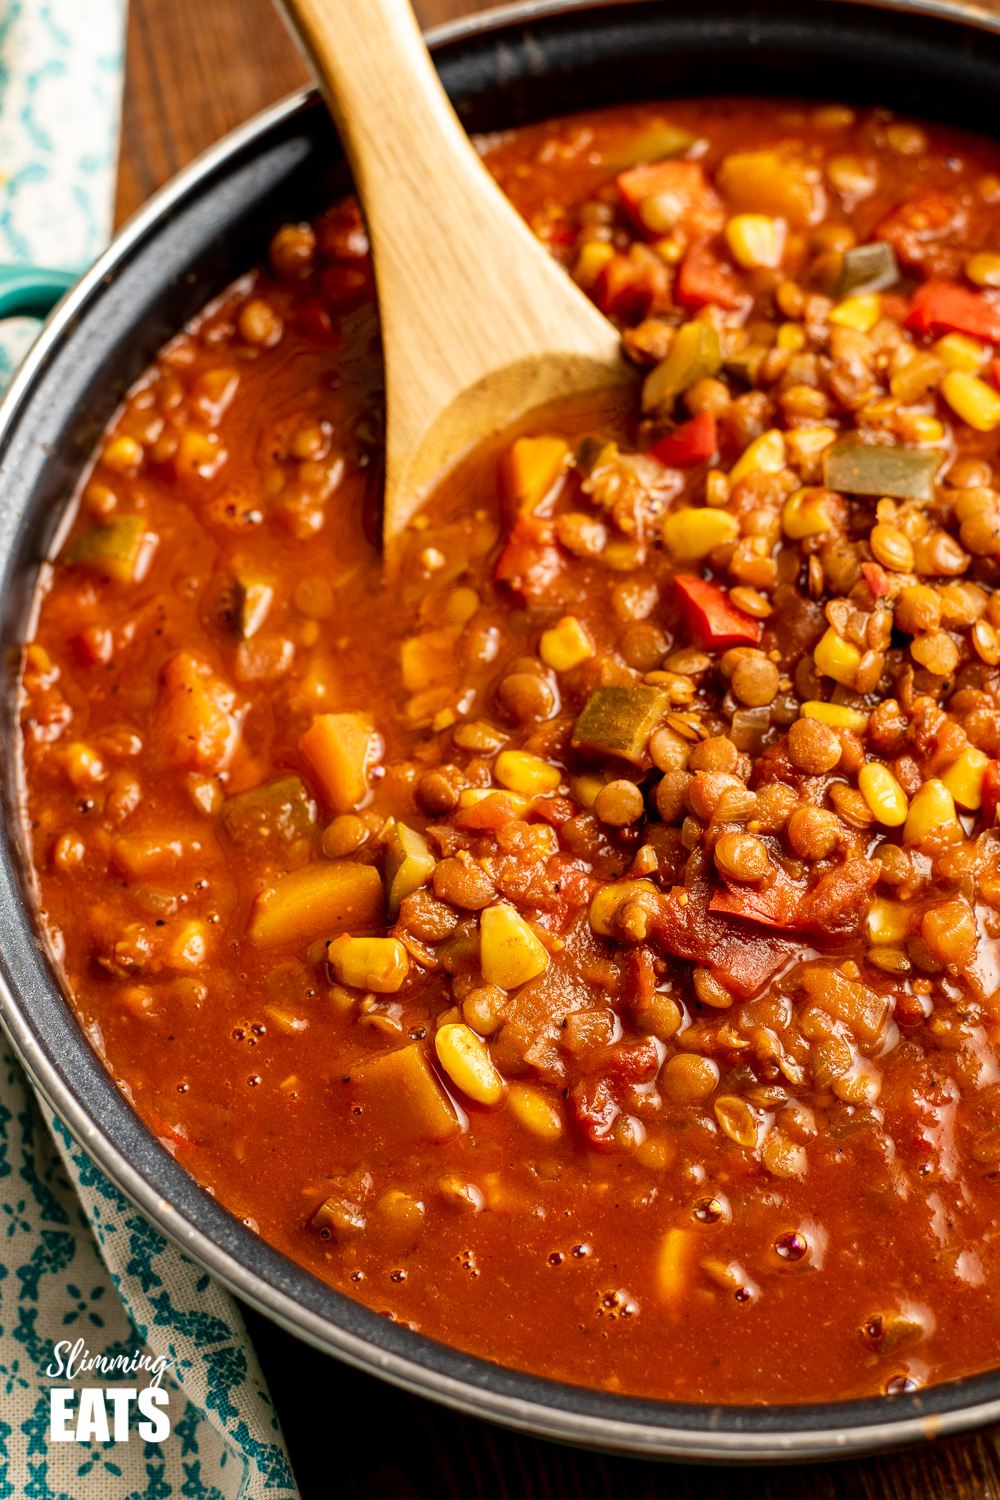 taco lentil soup in frying pan with wooden spoon.